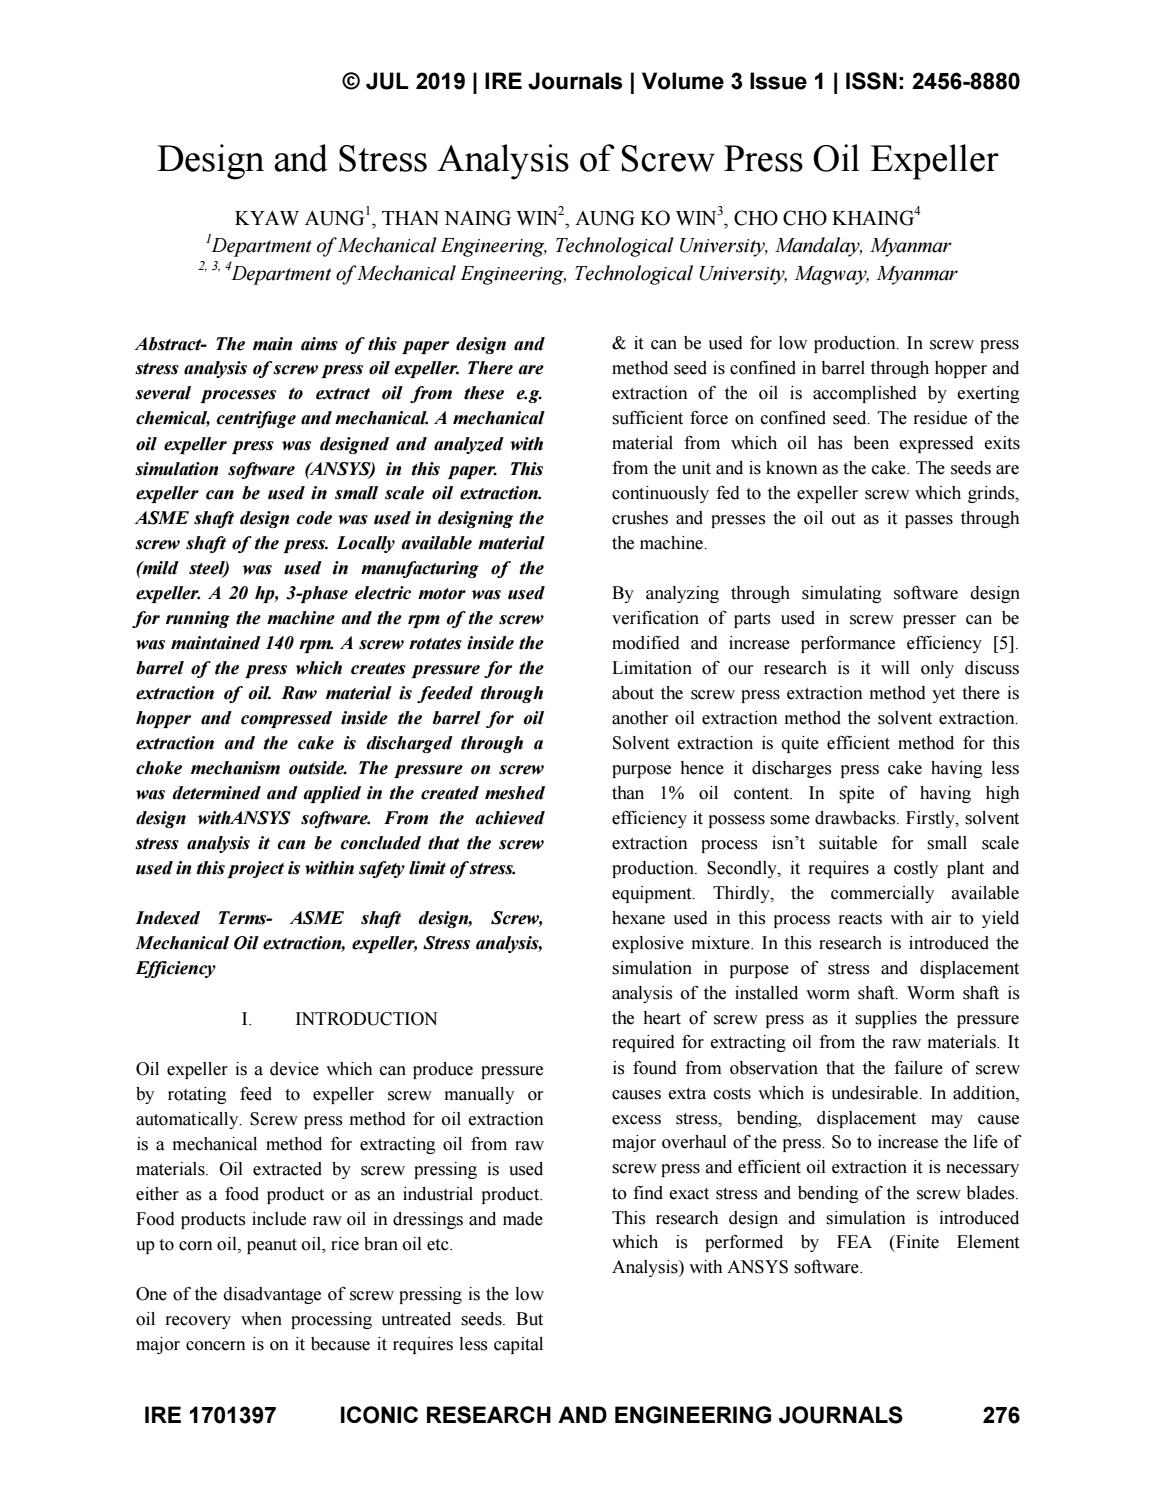 Design And Stress Analysis Of Screw Press Oil Expeller By Iconic Research And Engineering Journal Issuu